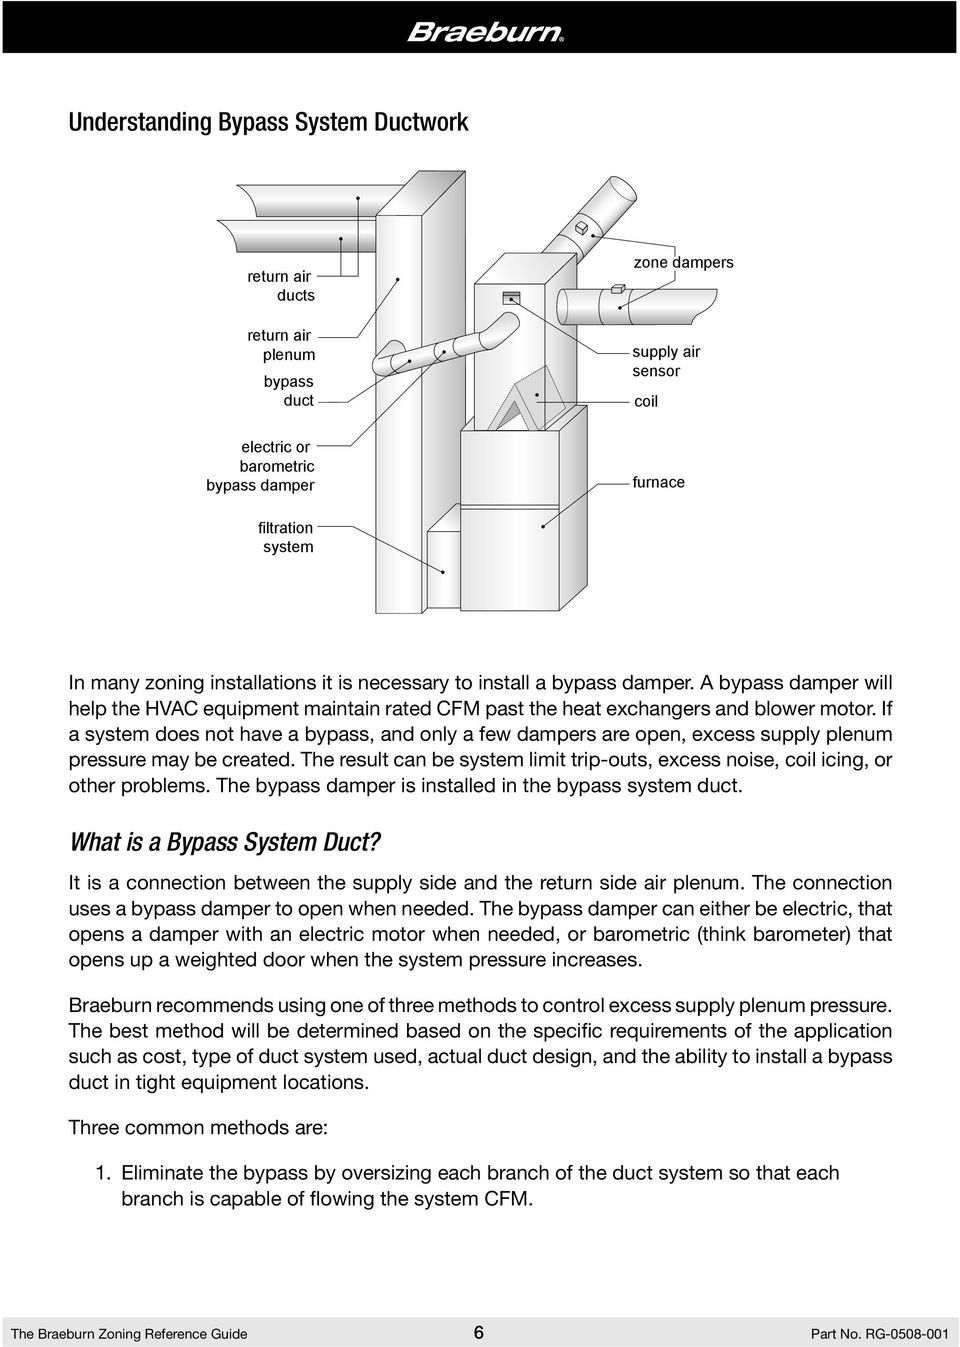 If a system does not have a bypass, and only a few dampers are open, excess supply plenum pressure may be created.